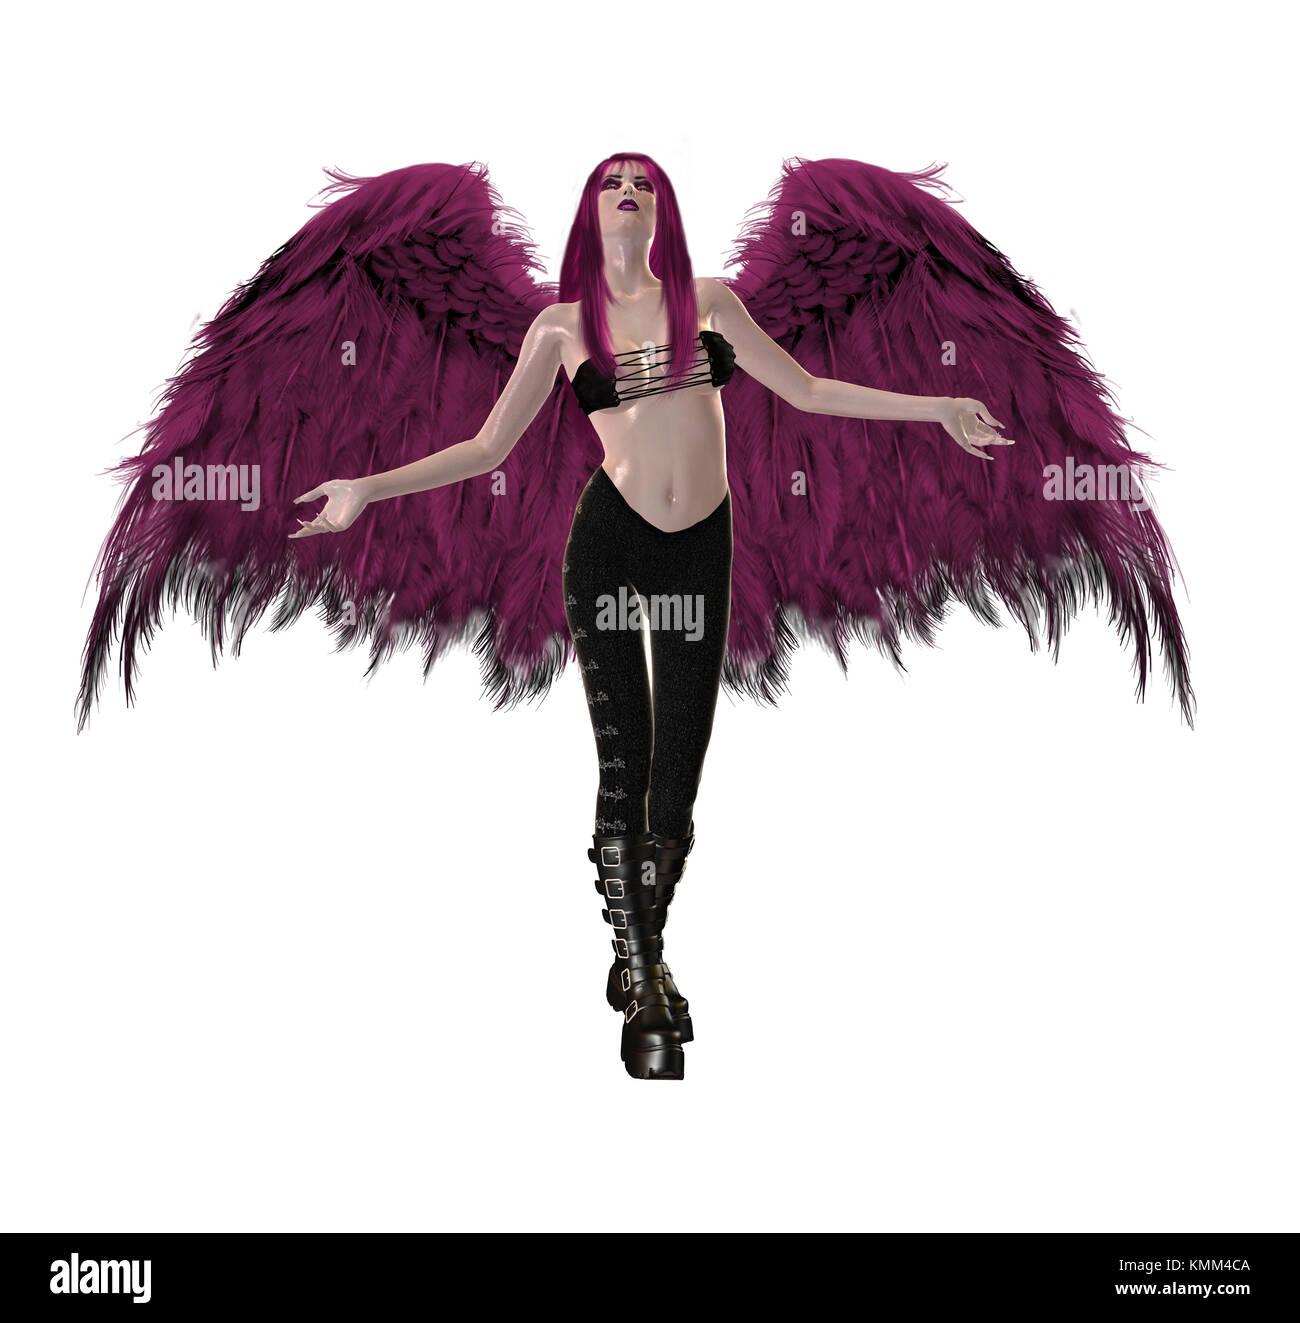 Gothic pink angel with wings spread and arms open - Stock Image